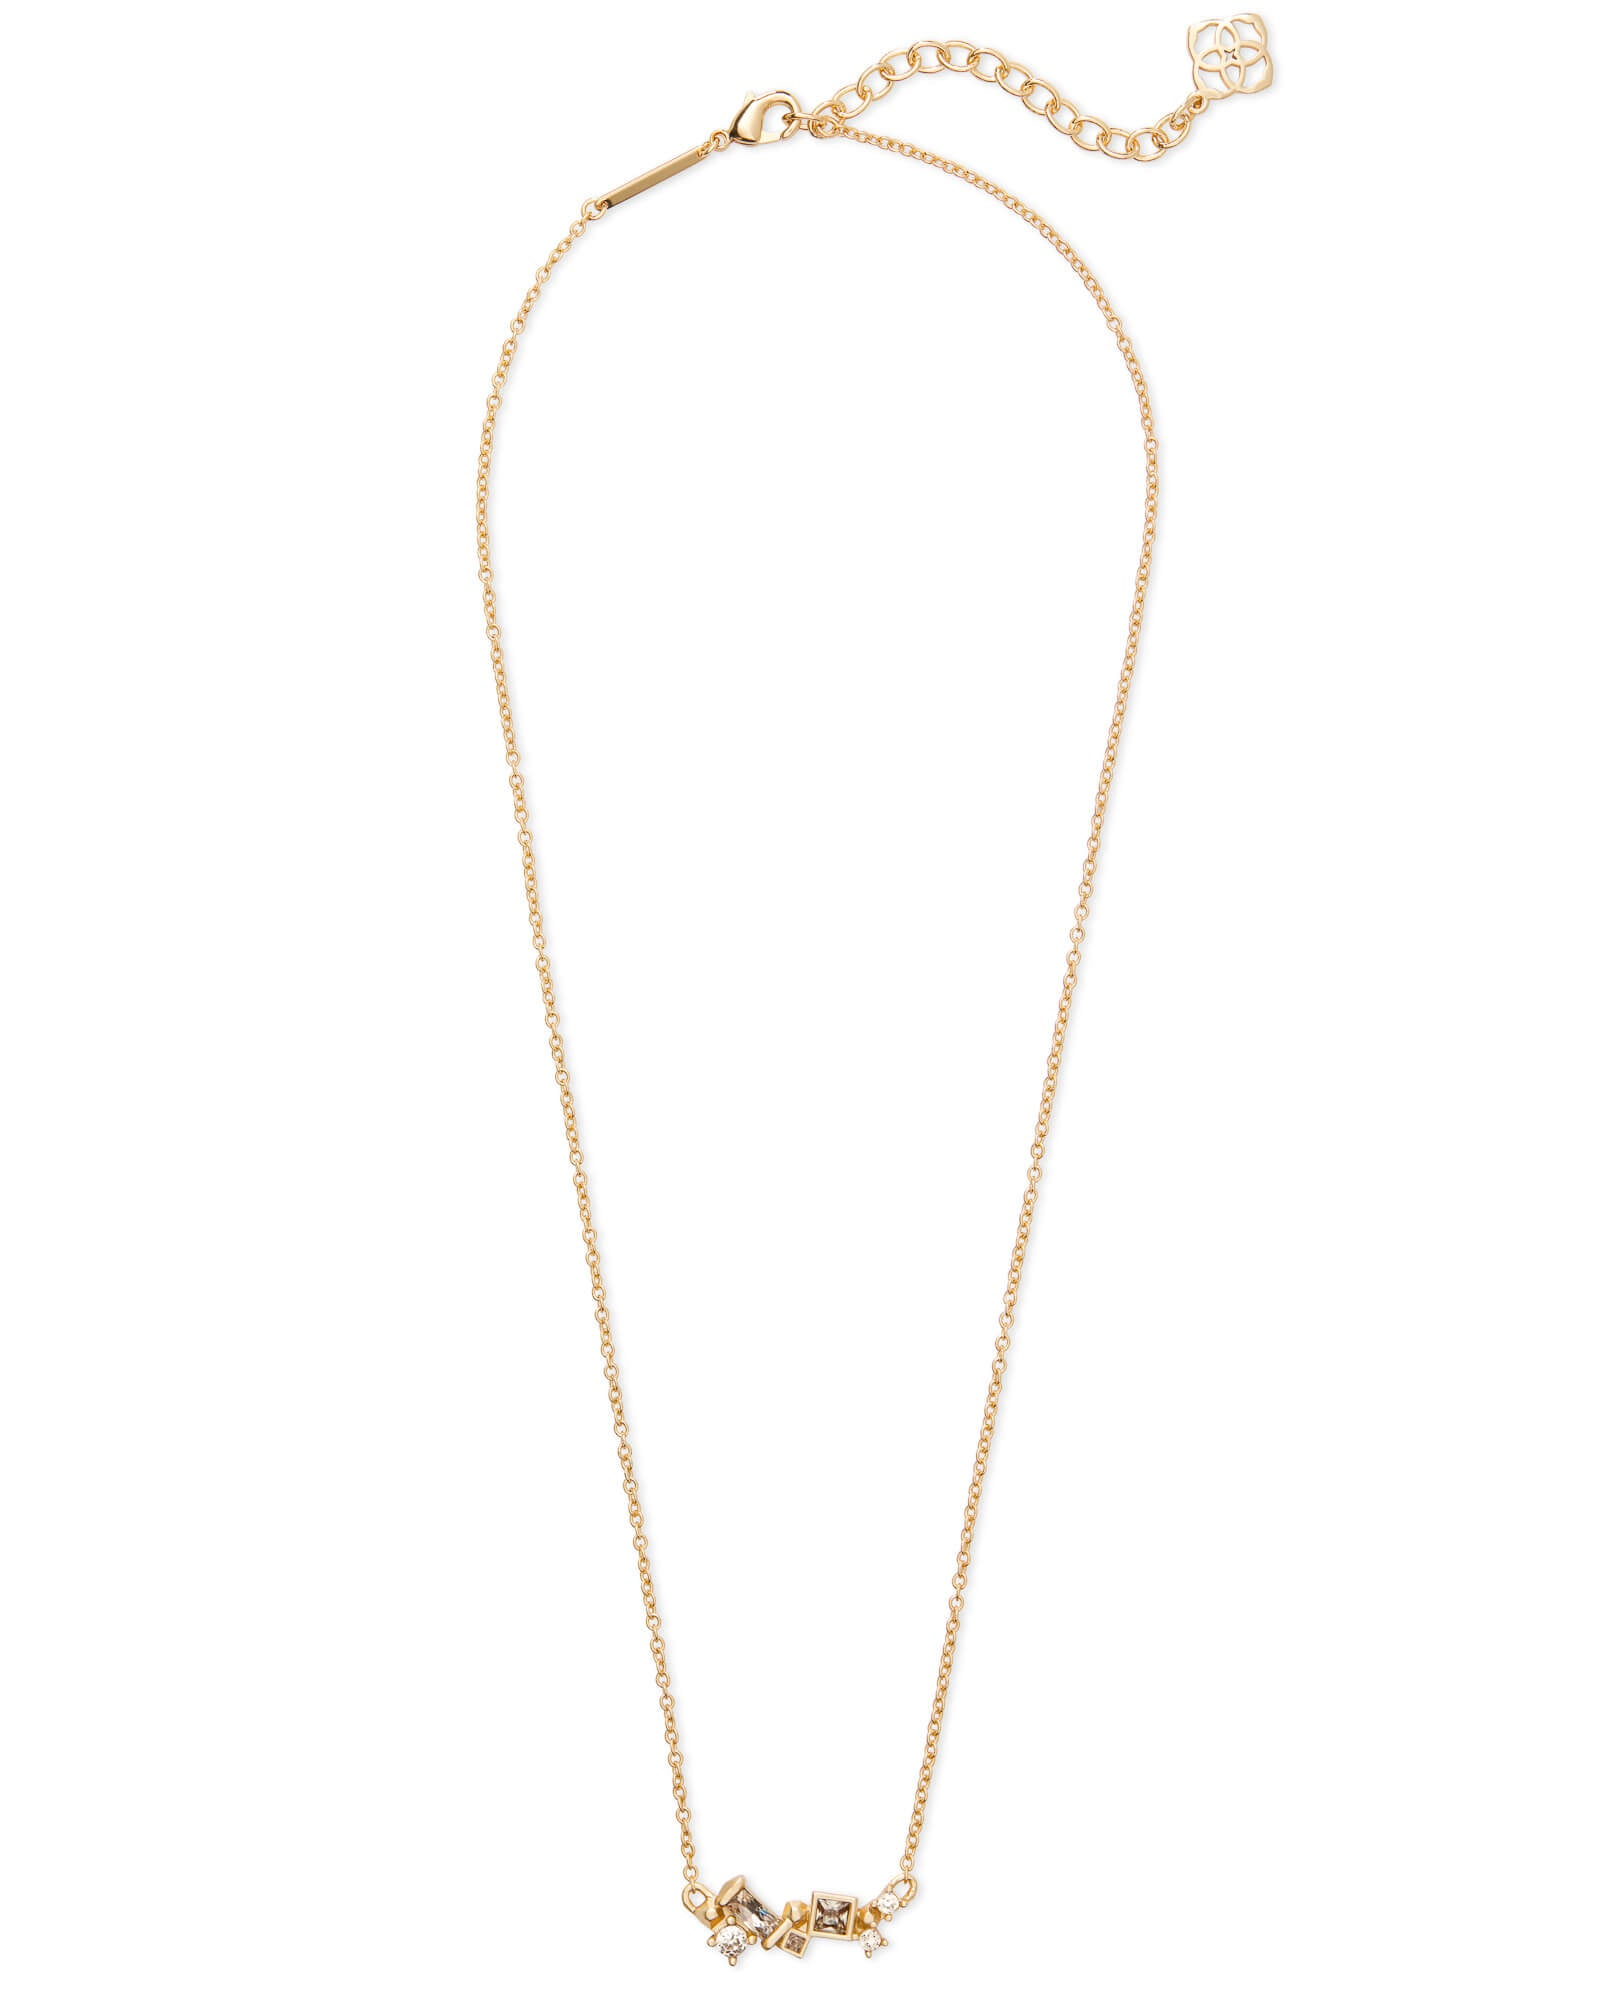 Gunner Gold Pendant Necklace in Smoky Mix